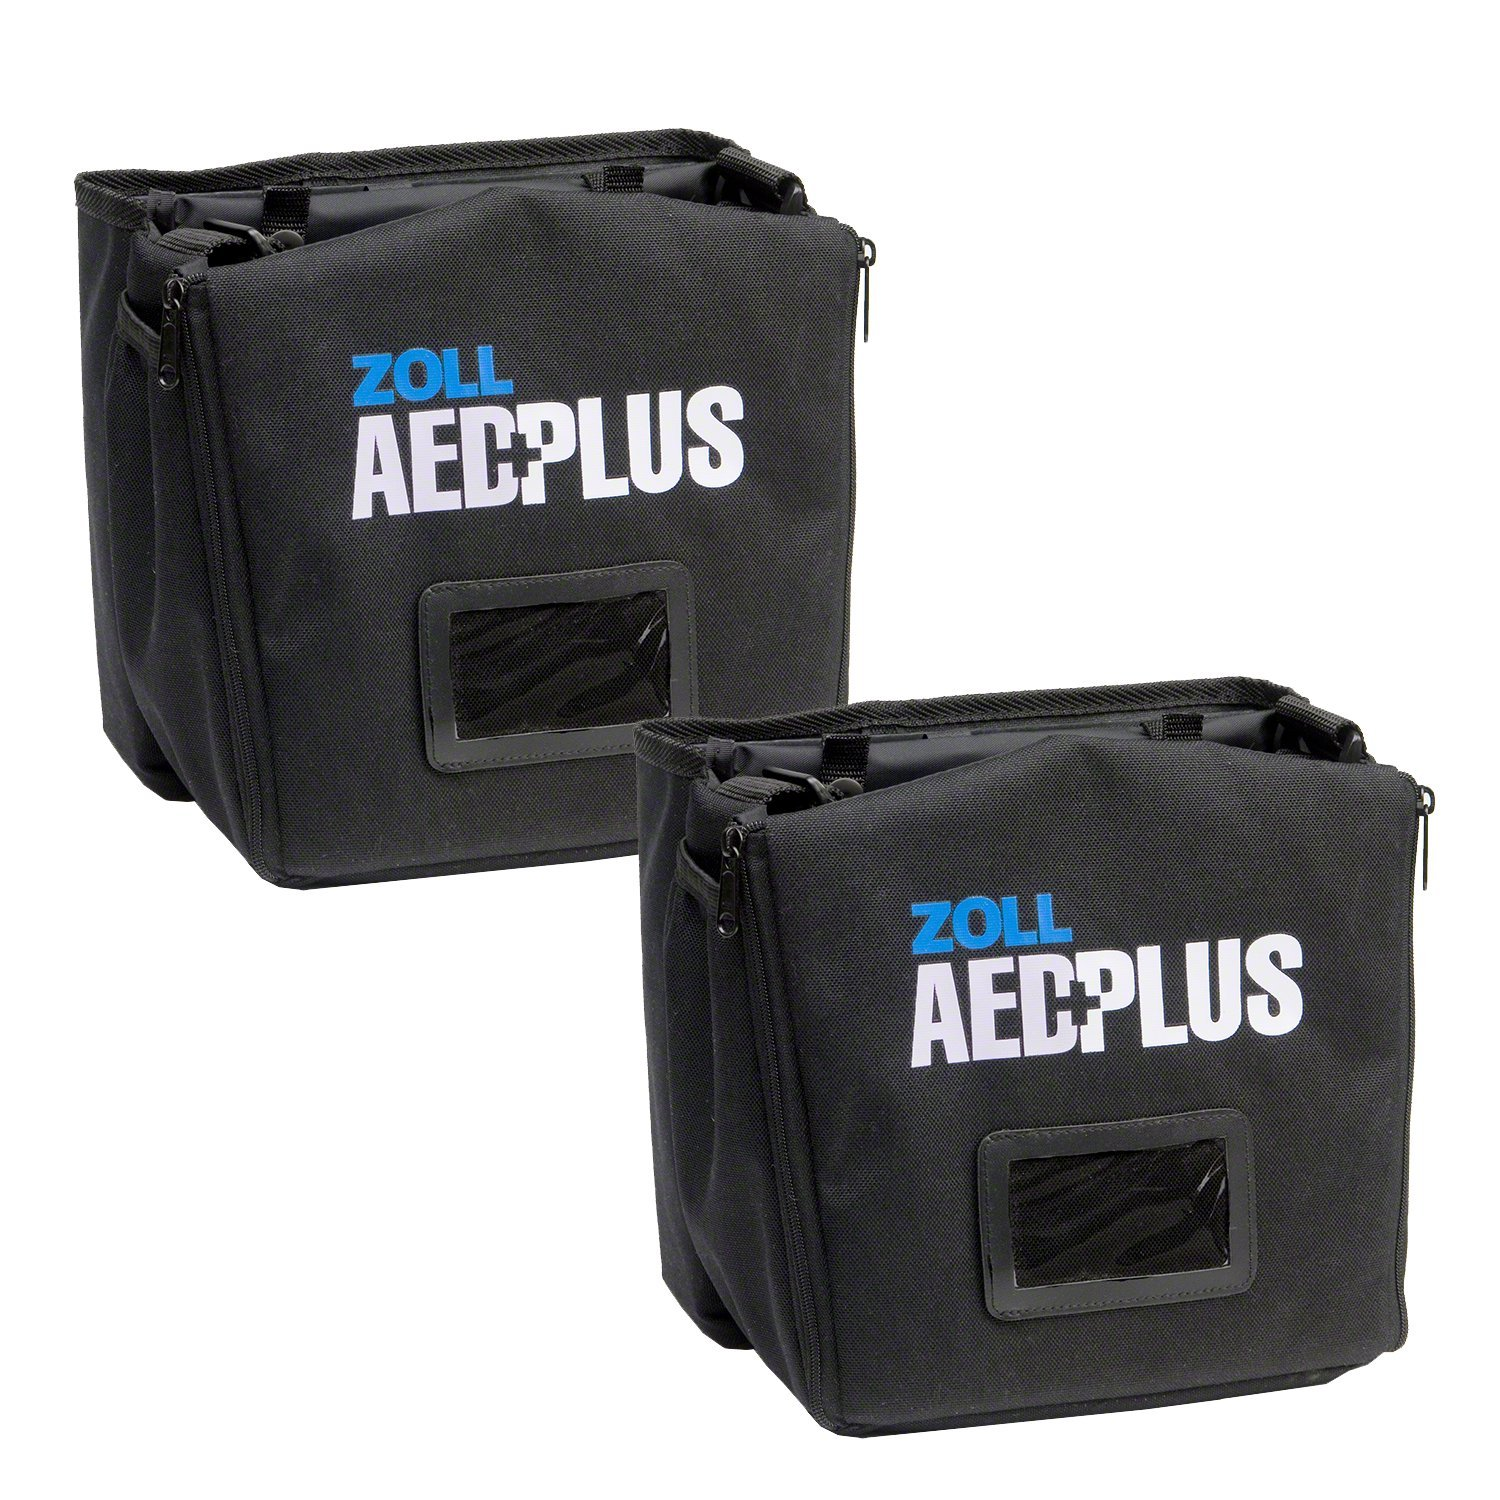 Wholesale CASE of 2 - Zoll Medical AED Plus Defib. Soft Carrying Case-Soft Carry Case, Black/Green by Zoll